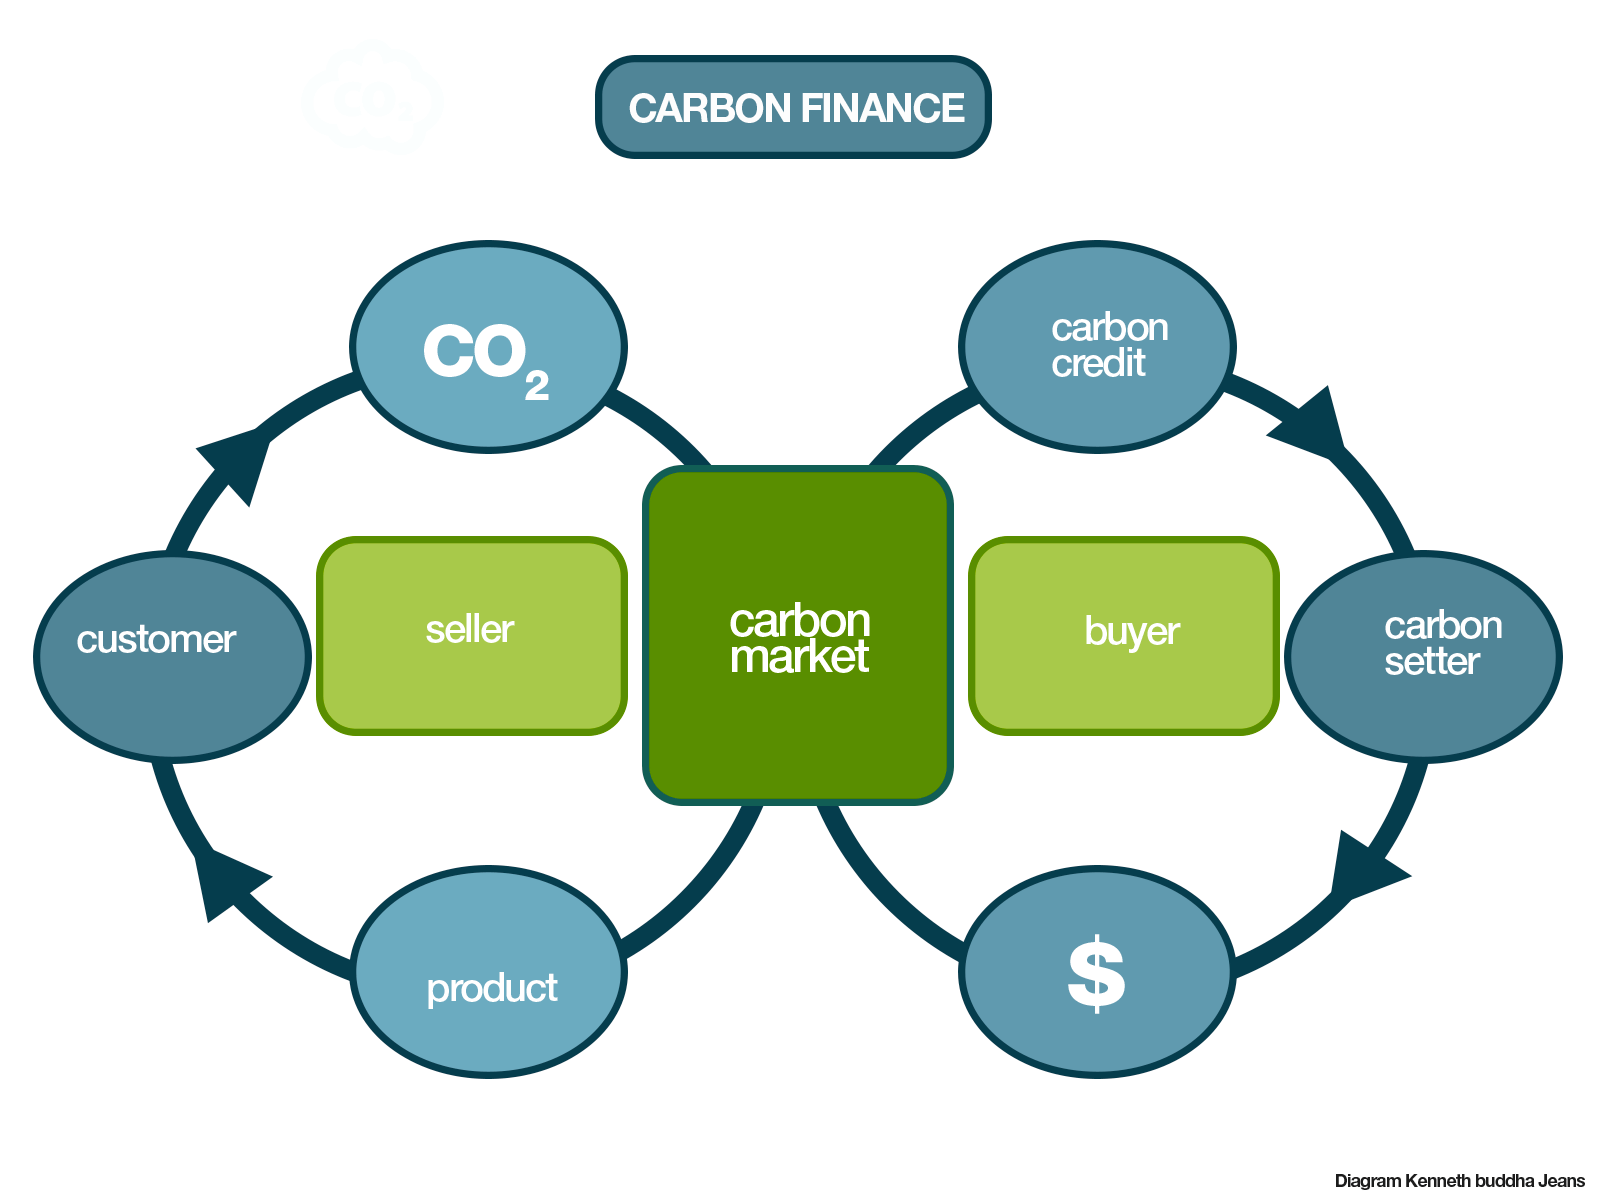 medium resolution of eco fashion dictionary carbon finance diagram graphics kenneth buddha jeans